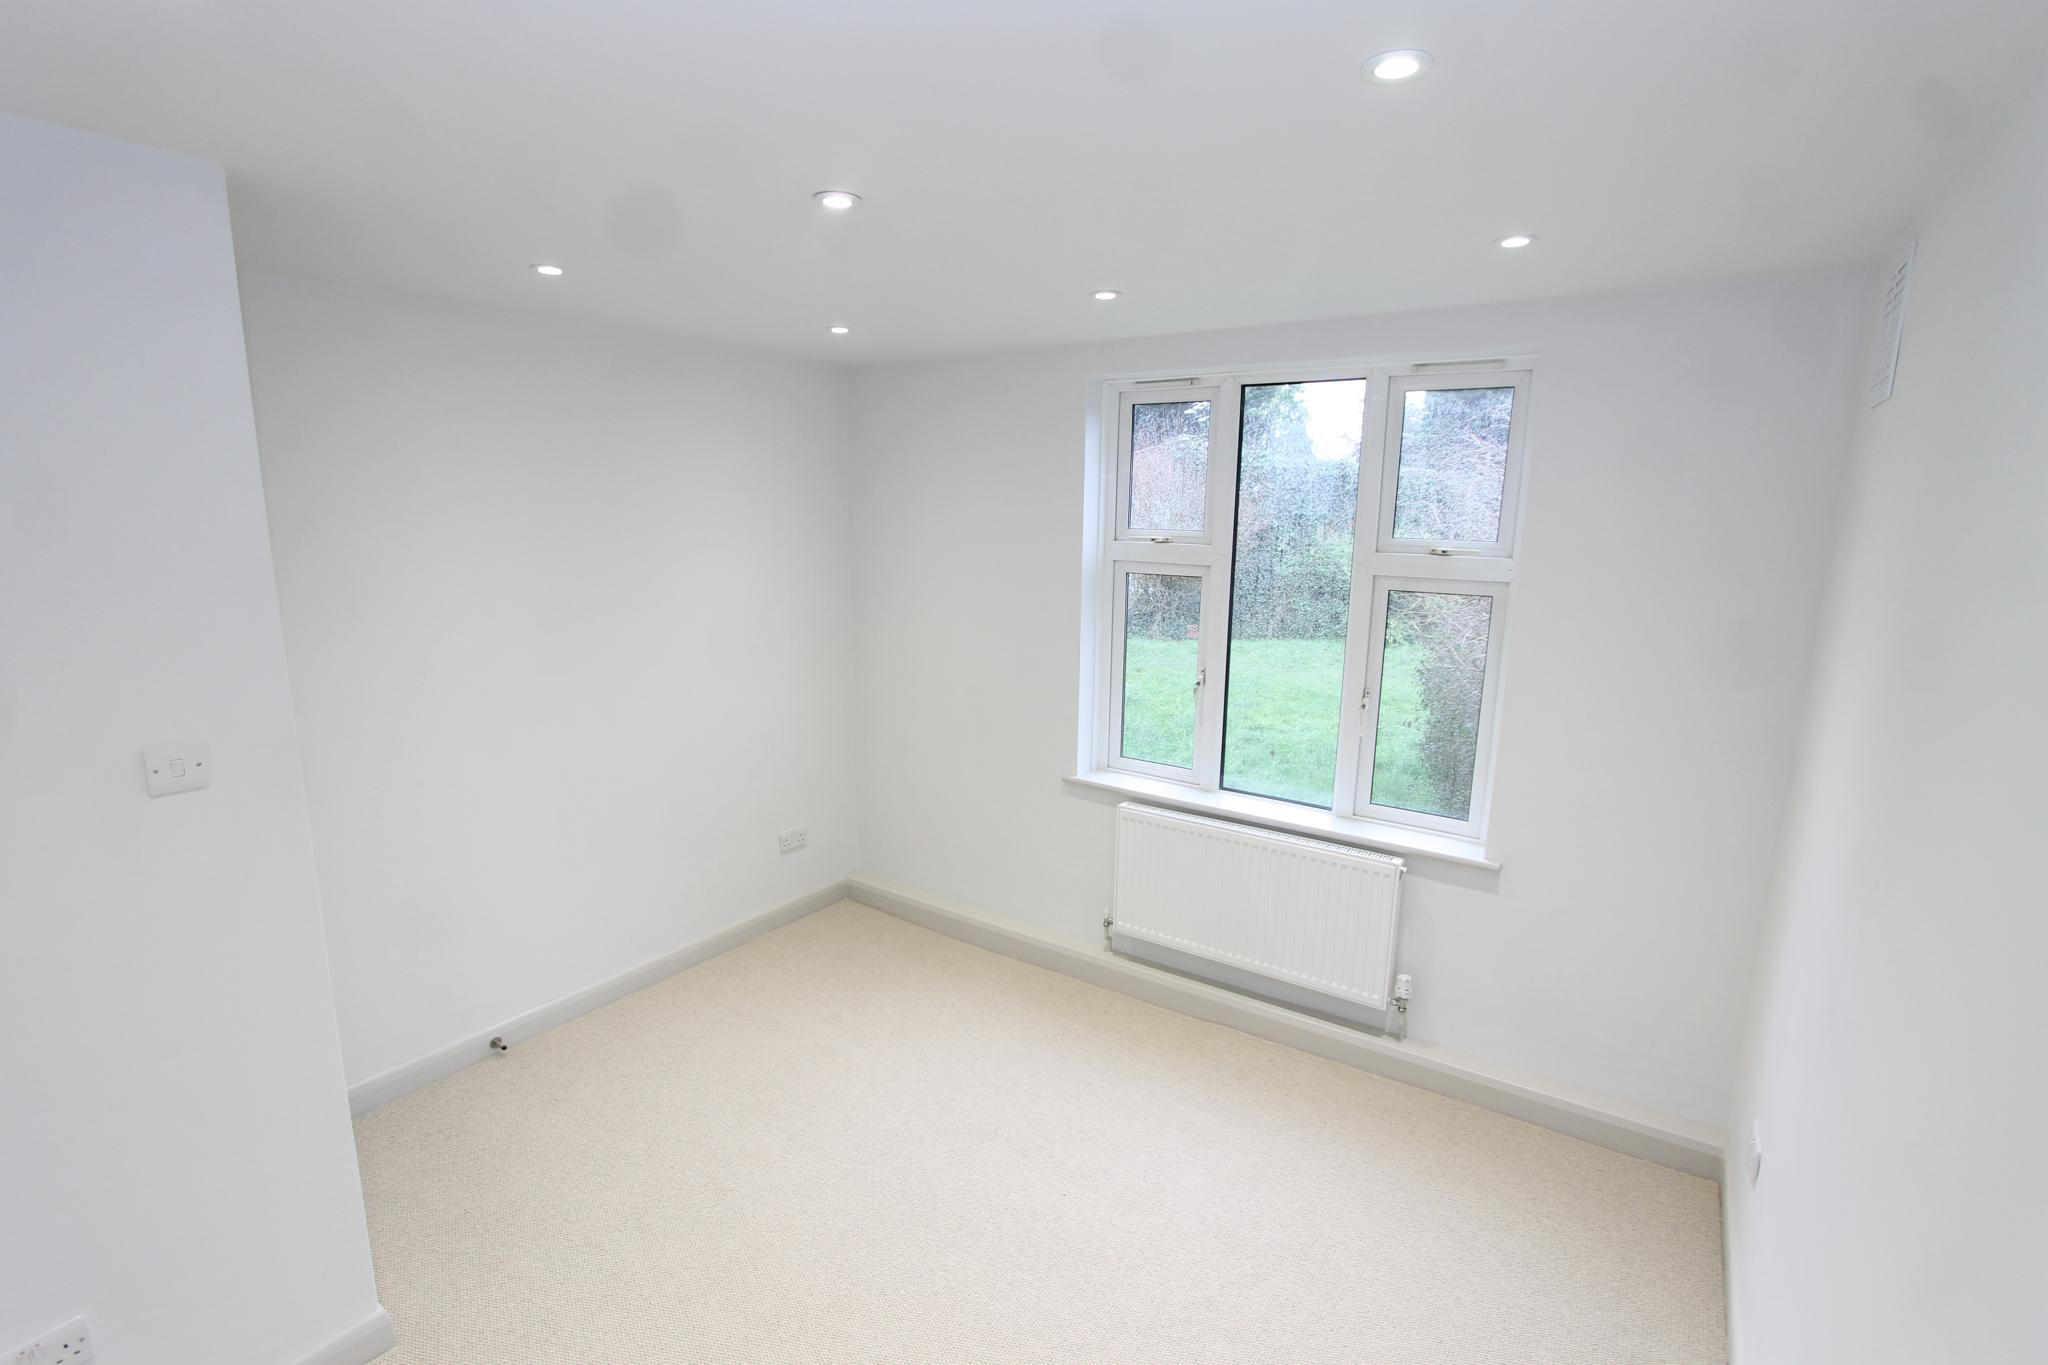 3 bedroom apartment flat/apartment Let Agreed in Worcester Park - Photograph 6.